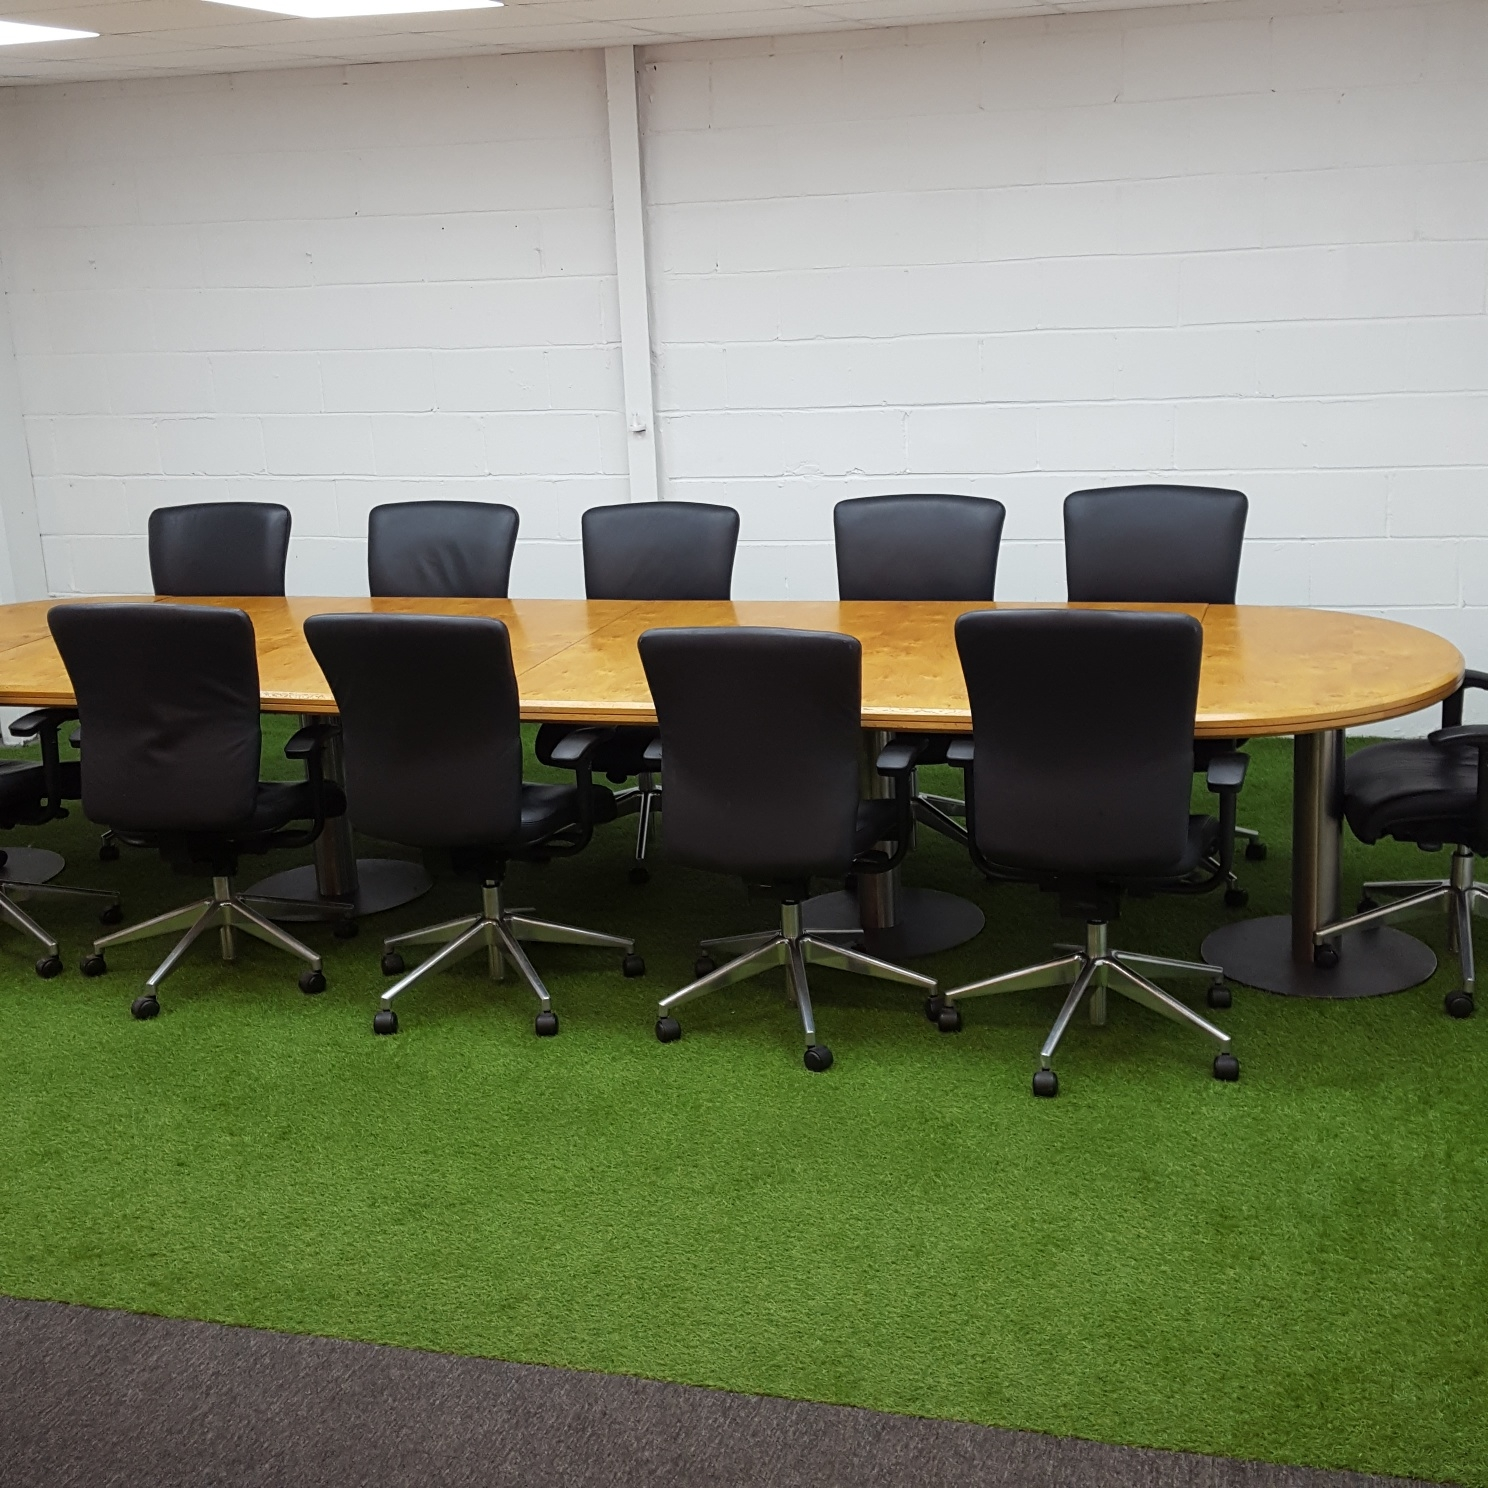 Boardroom Furniture For Sale: Used Vintage Oak Conference / Boardroom Table, 12 Person